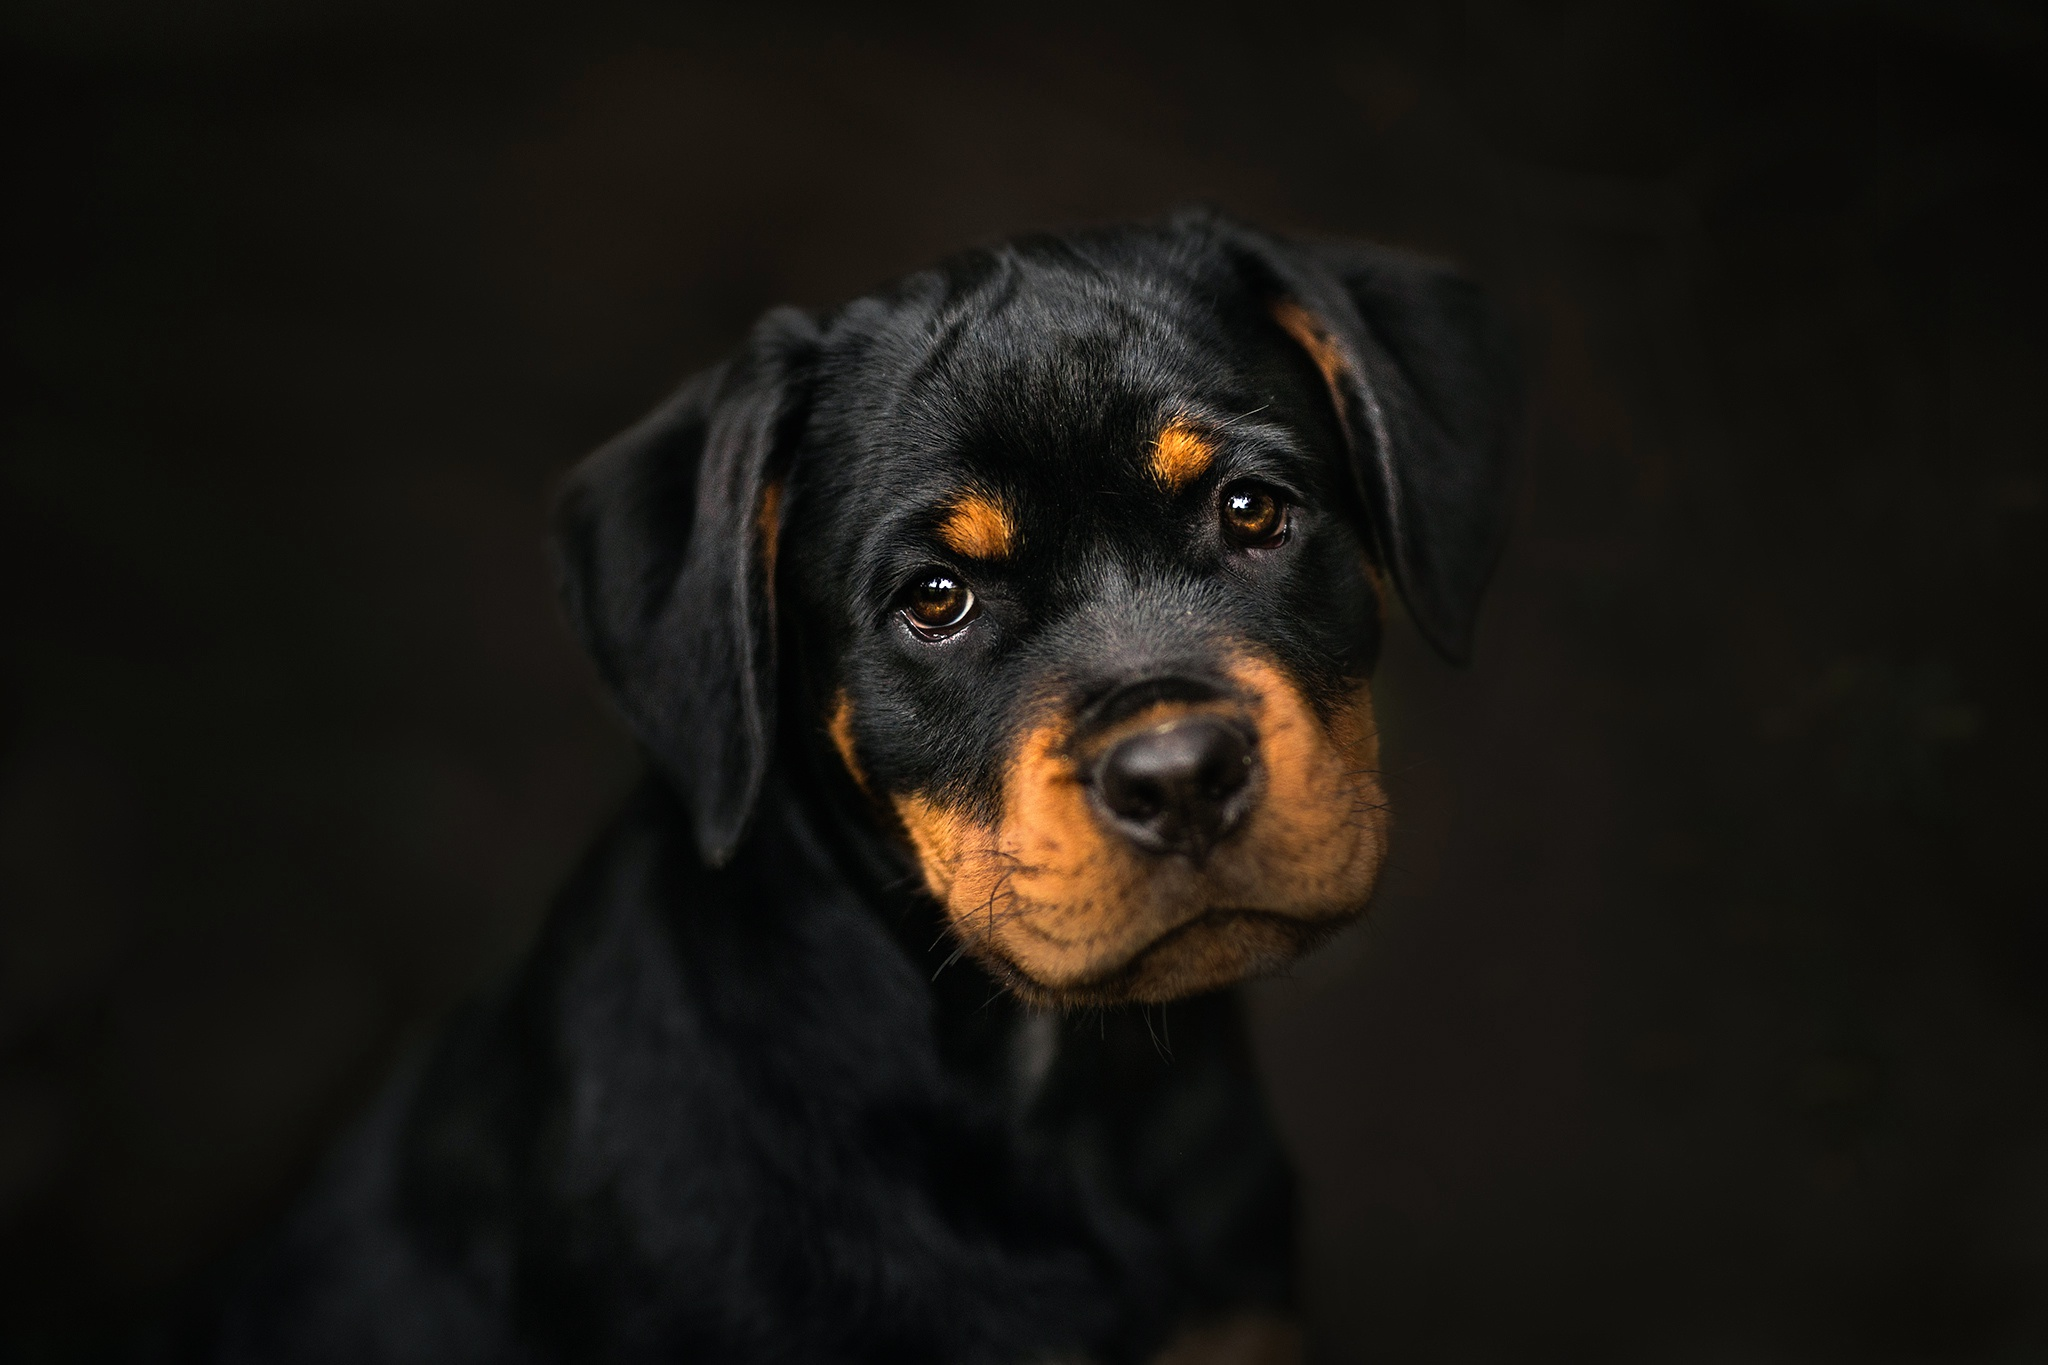 Cute Anime Dogs Wallpaper Rottweiler Hd Animals 4k Wallpapers Images Backgrounds